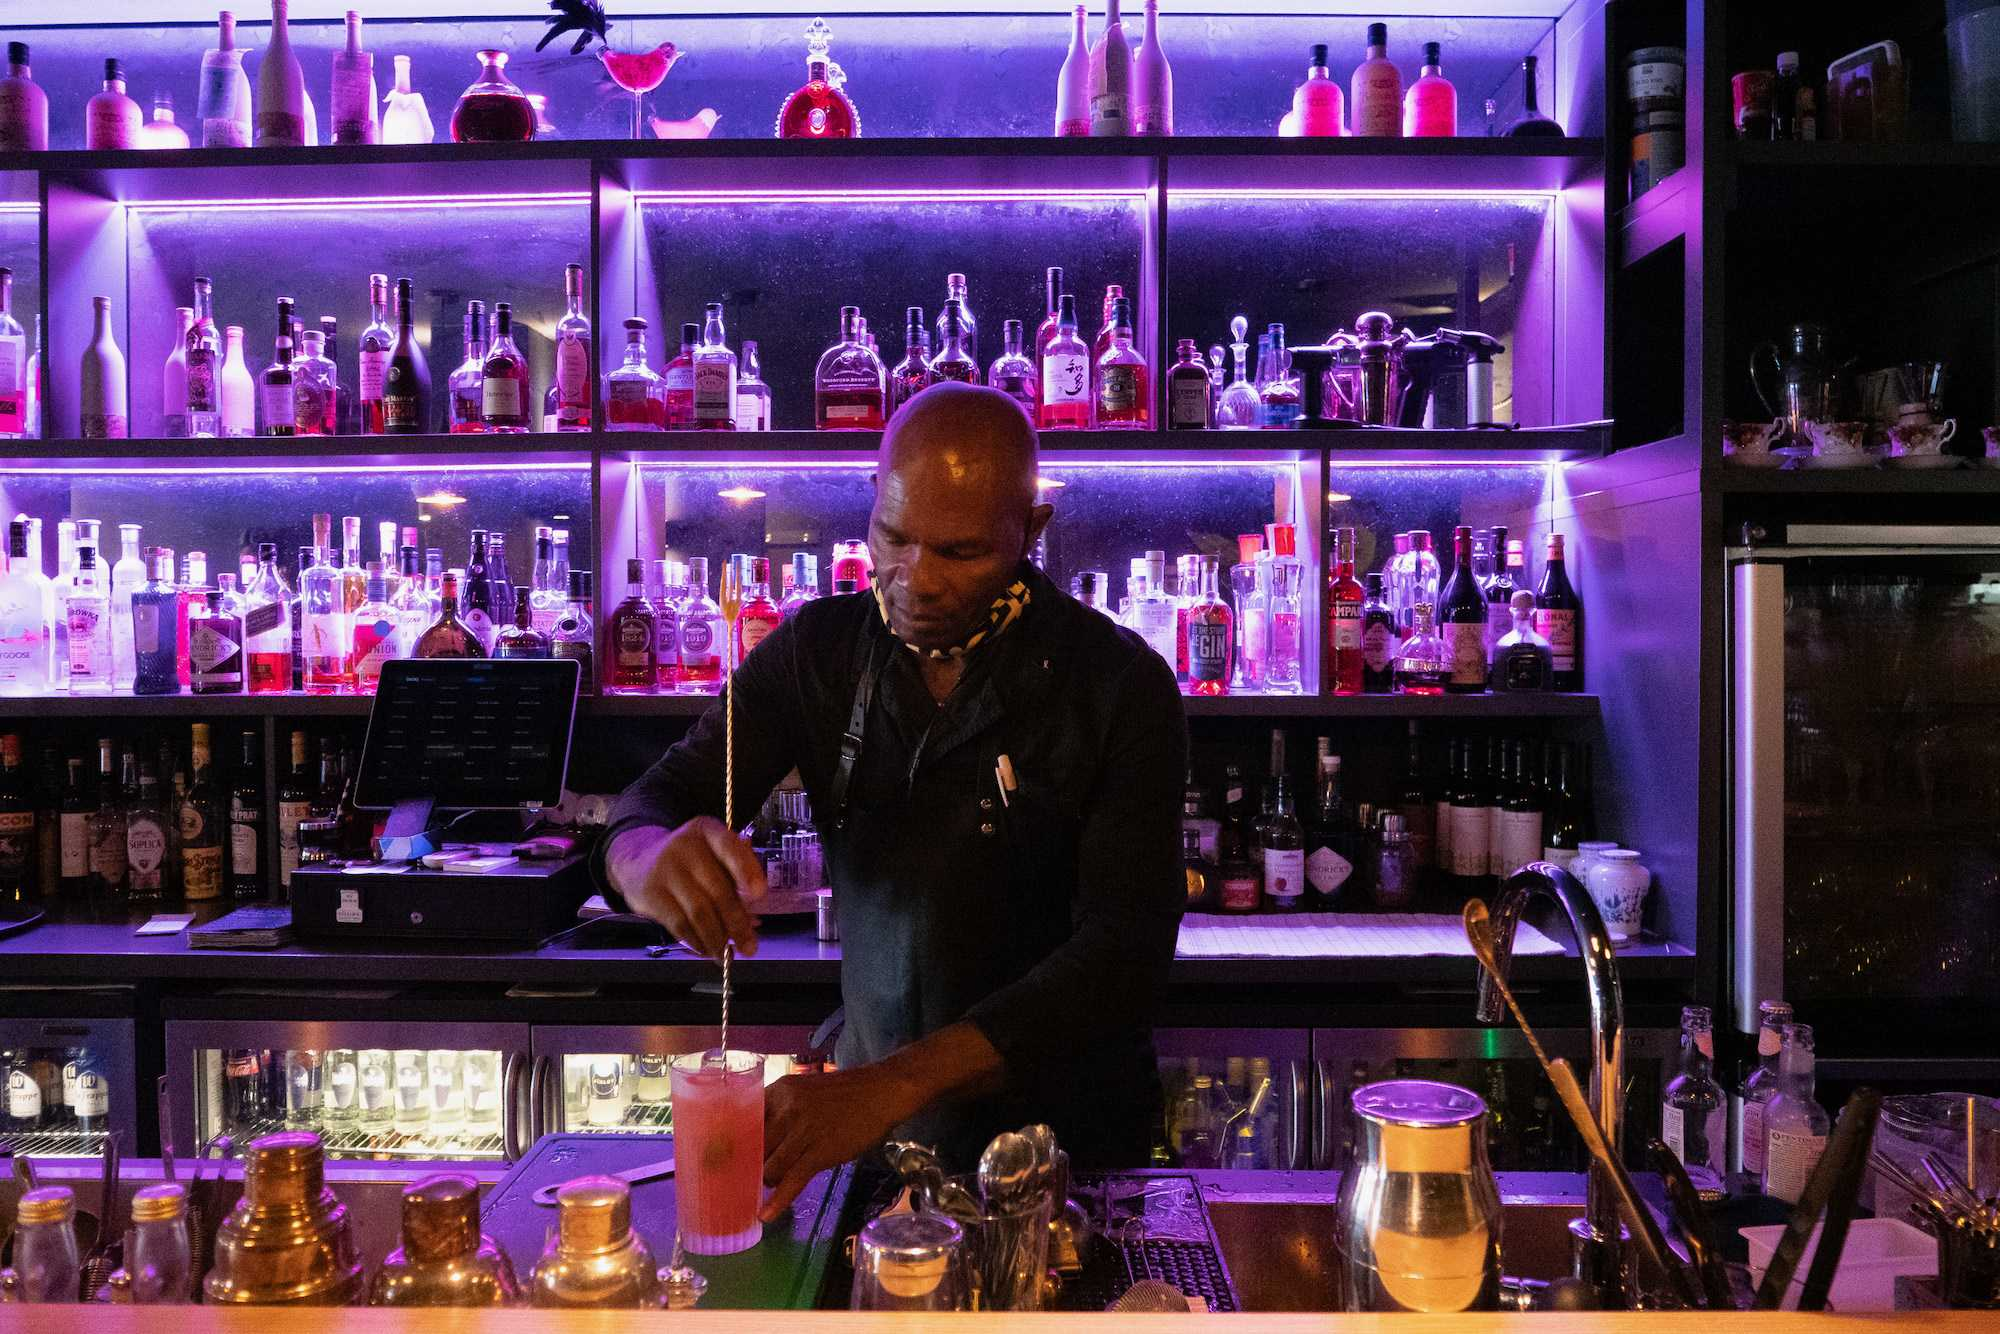 Owner of Amsterdam hot spot, Labyrinth, sees his business as more than just a place for great cocktails, bites, and community events.